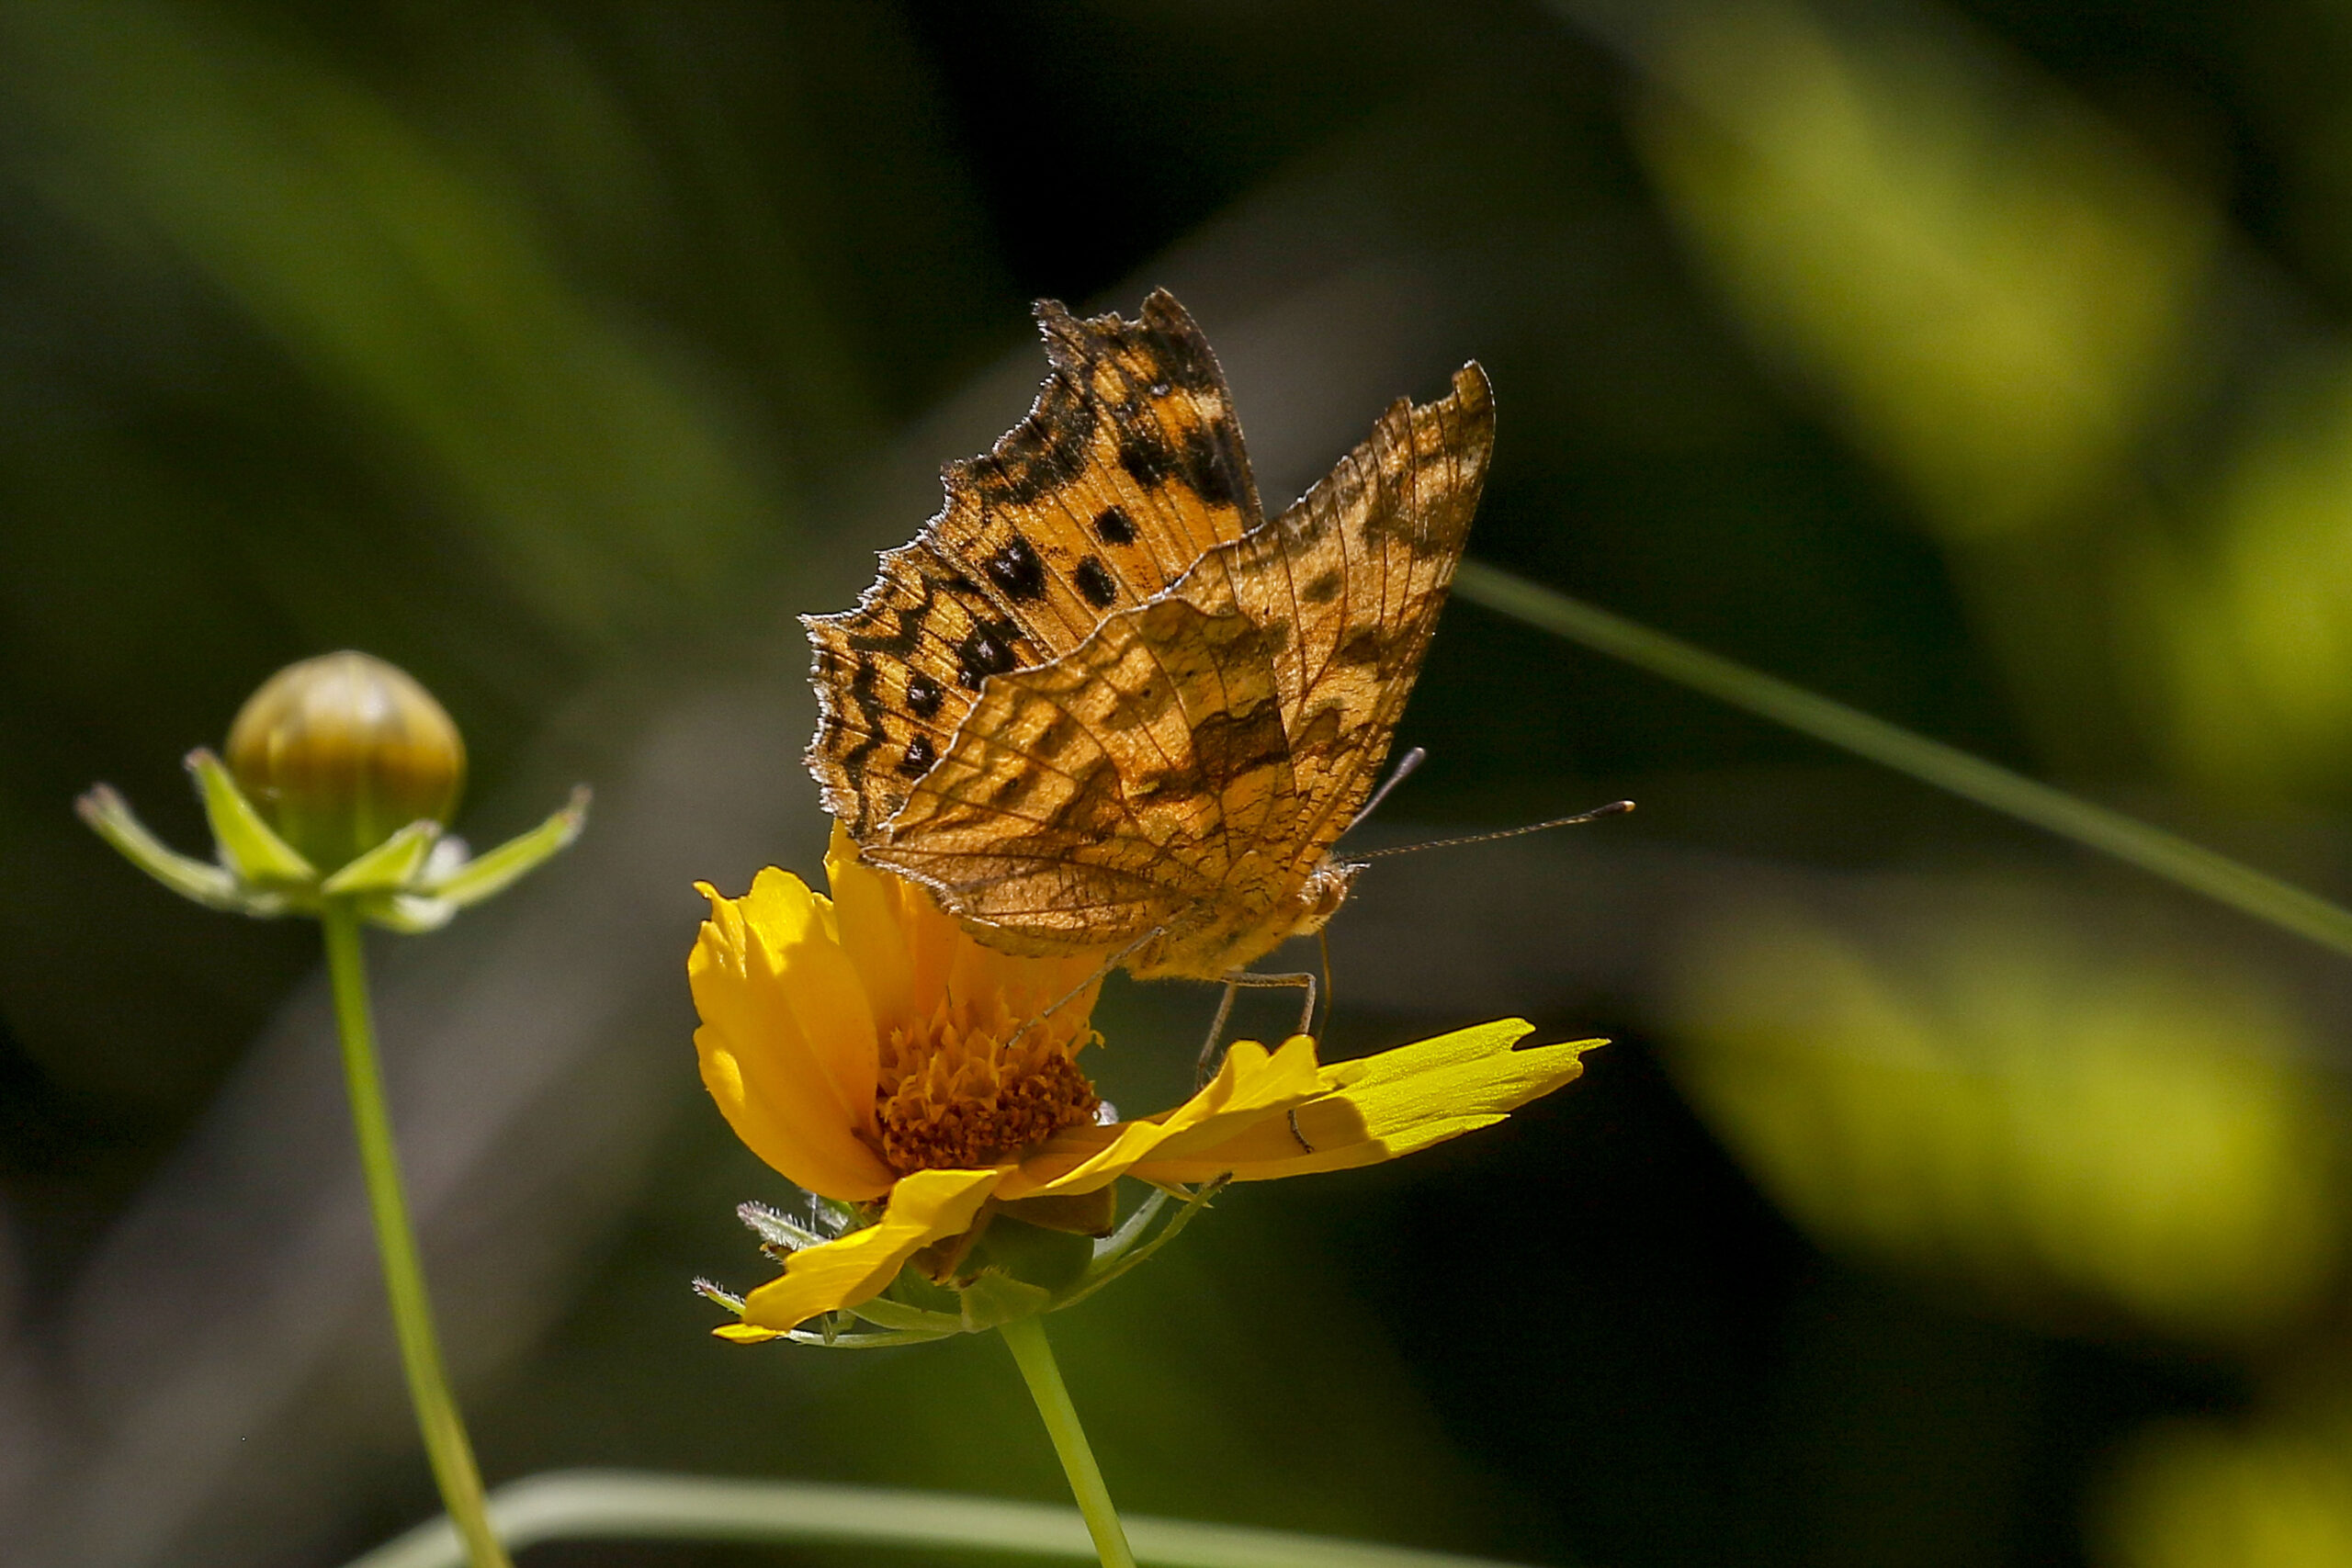 Warming Trends: A Song for the Planet, Secrets of Hempcrete and Butterfly Snapshots